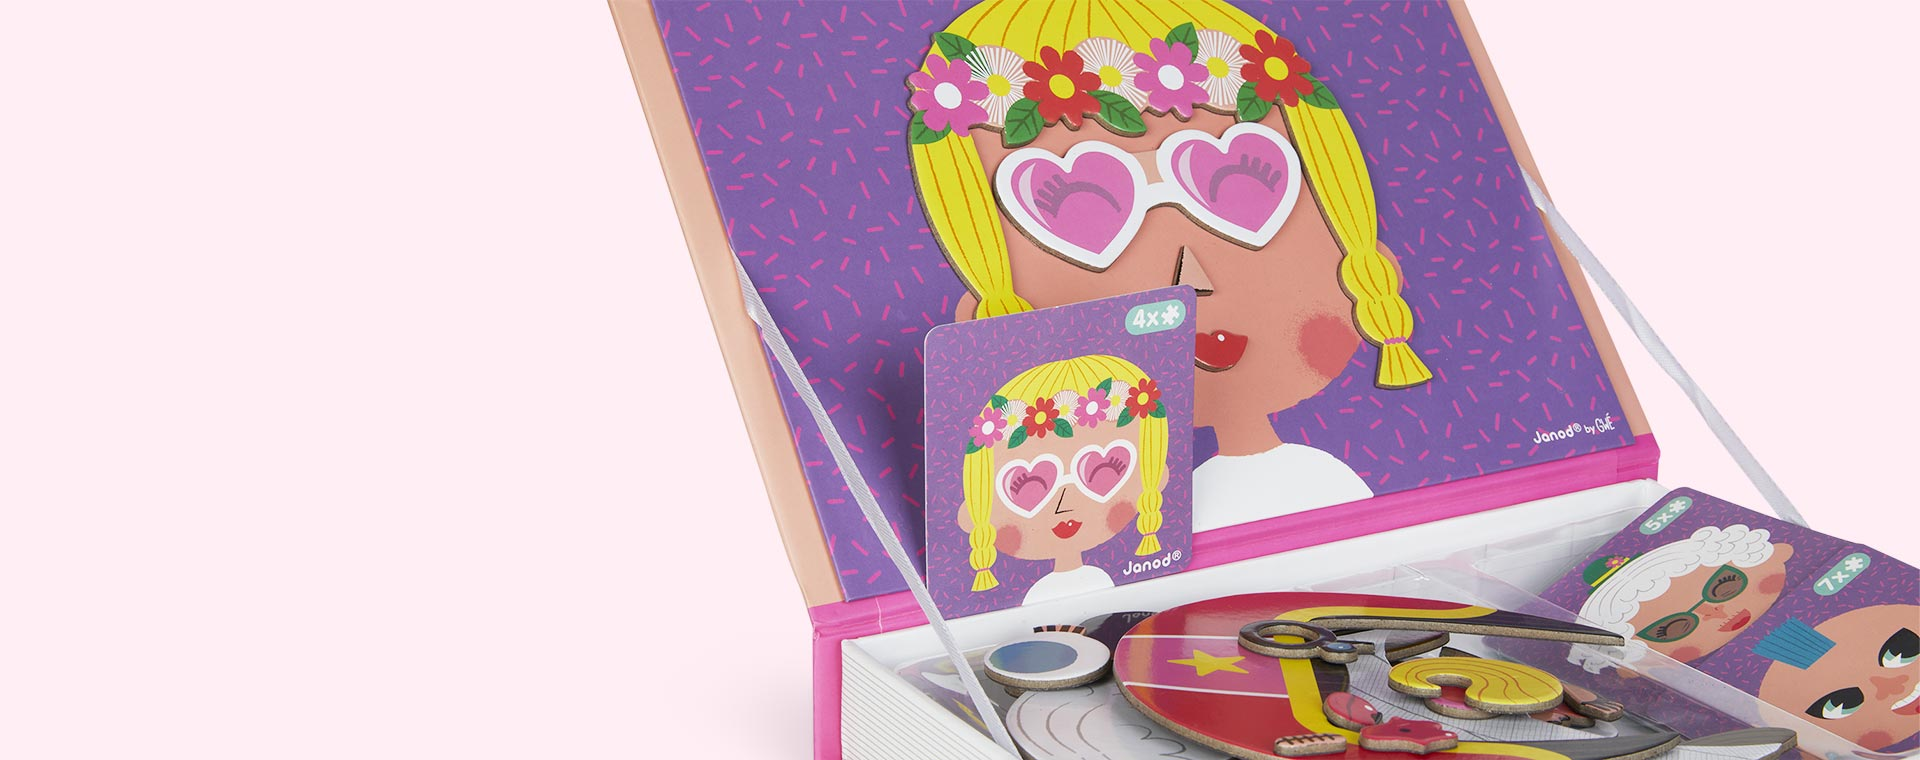 Girl's Crazy Faces Janod Magnetibook Educational Toy